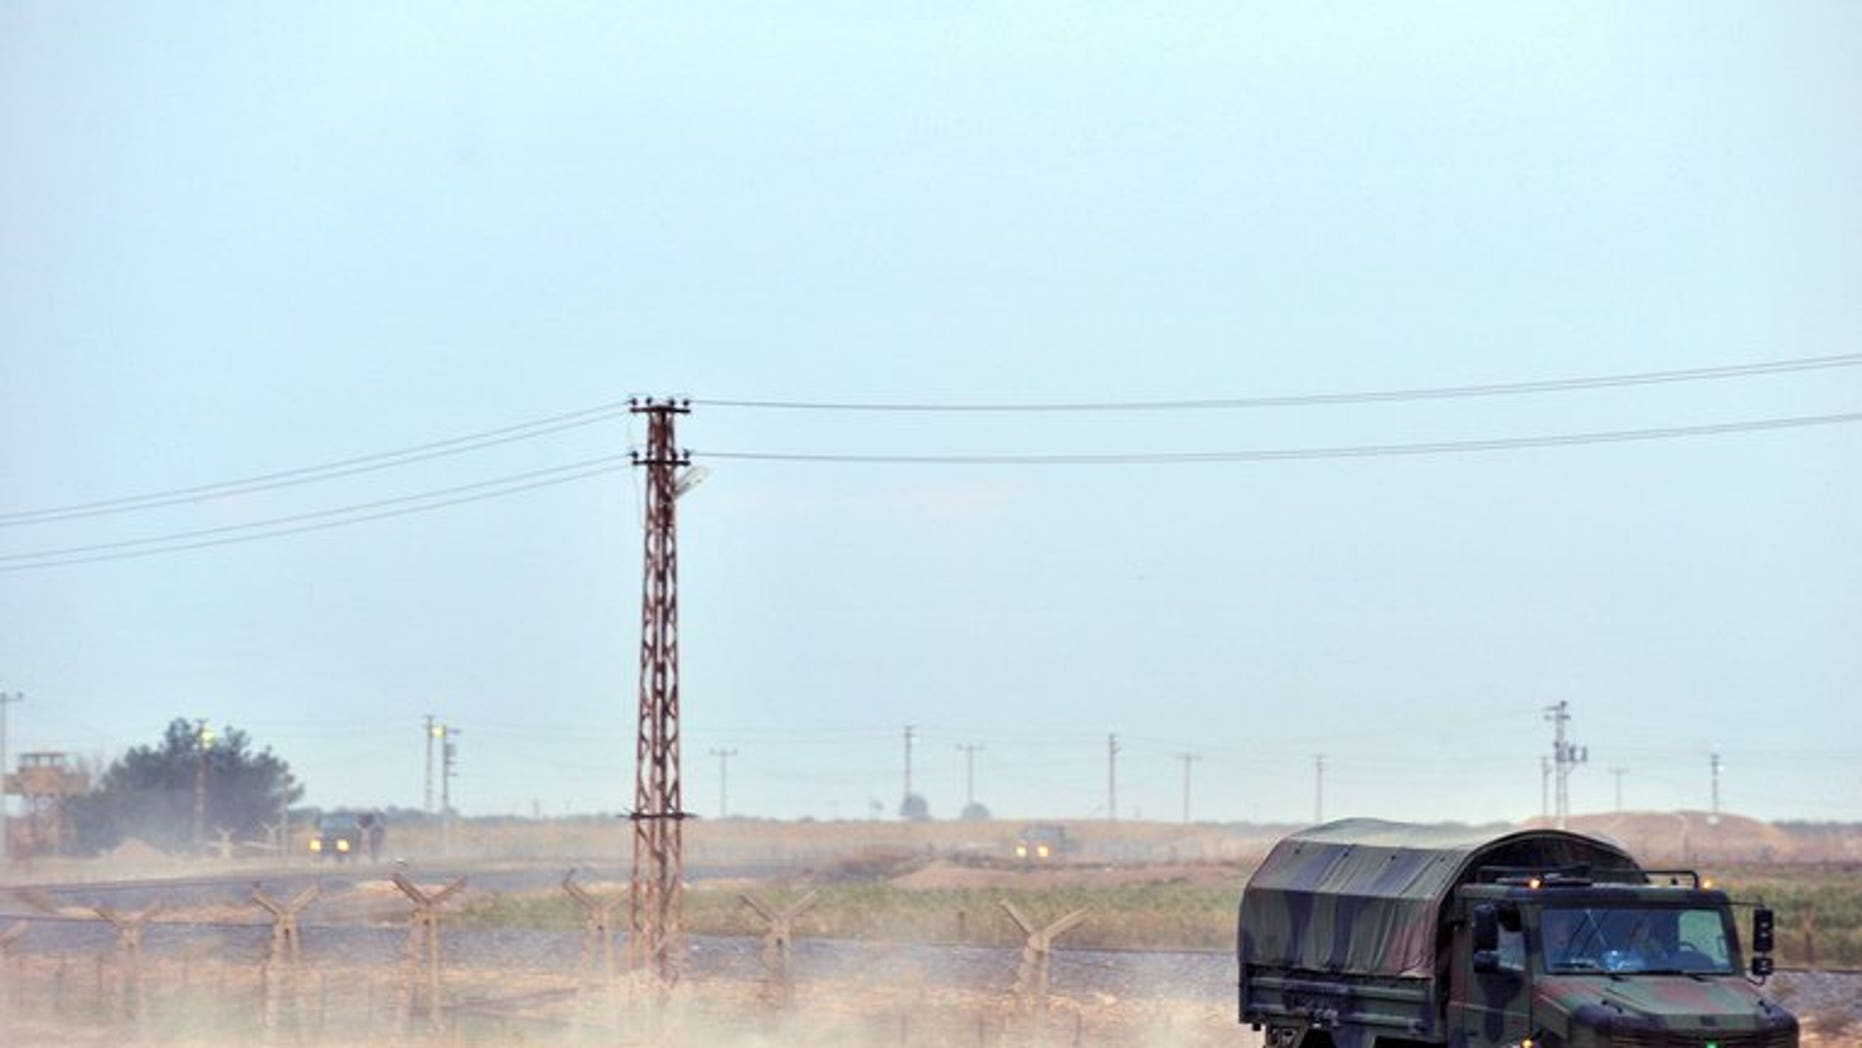 Turkish soldiers patrol on the Turkish-Syrian border near the town of Ceylanpinar on November 11, 2012. A man was killed and his three children wounded Friday in southeastern Turkey by a mortar shell fired from across the border with conflict-torn Syria, a newspaper reported.